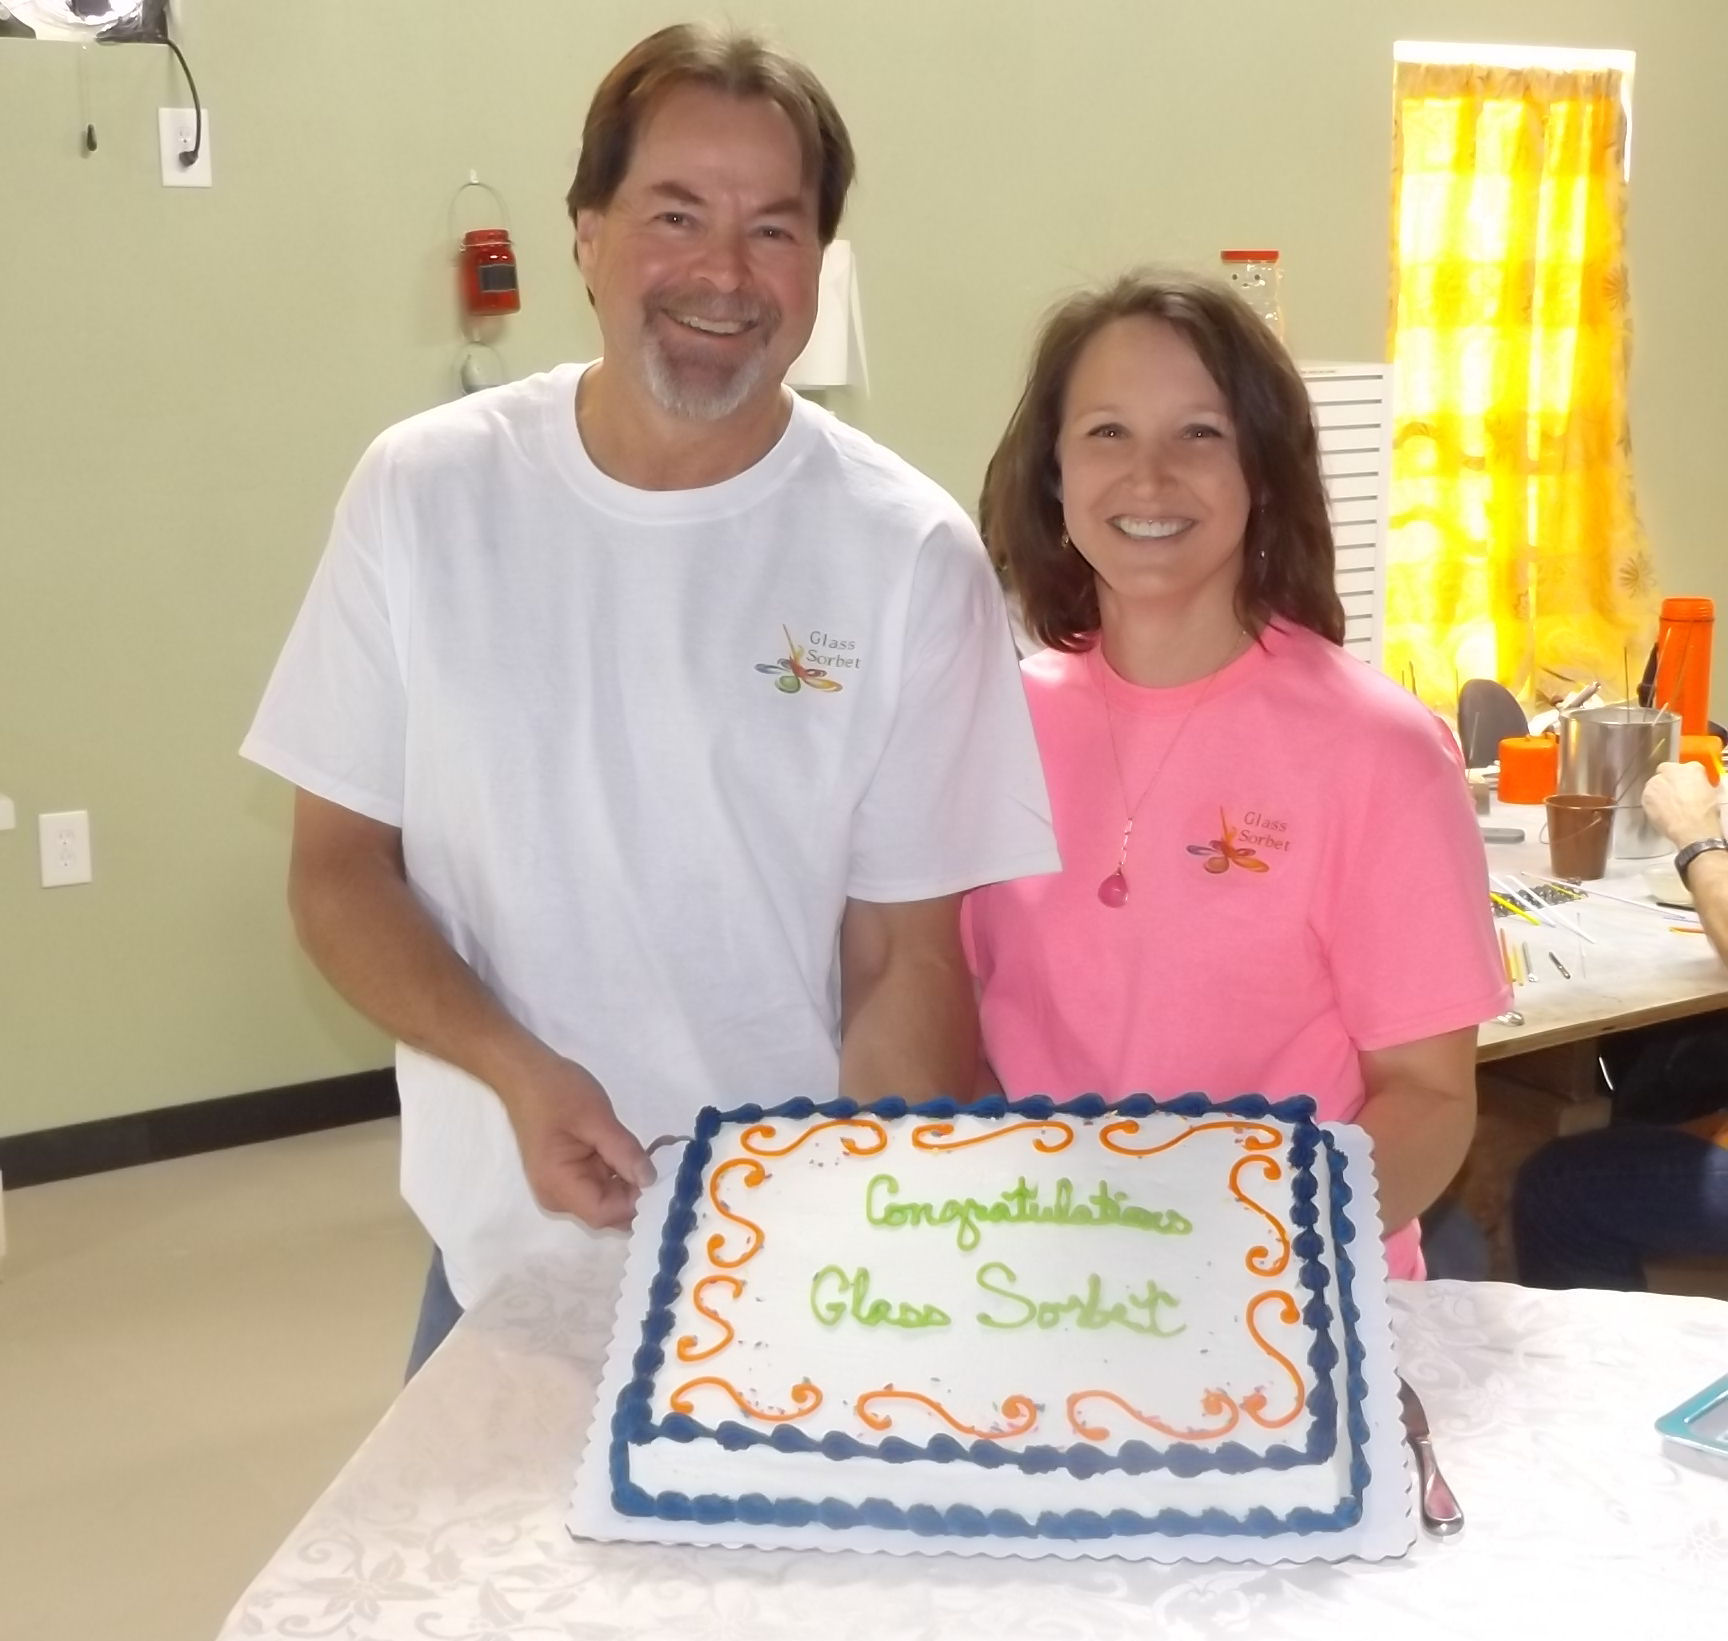 owners-with-cake.jpg